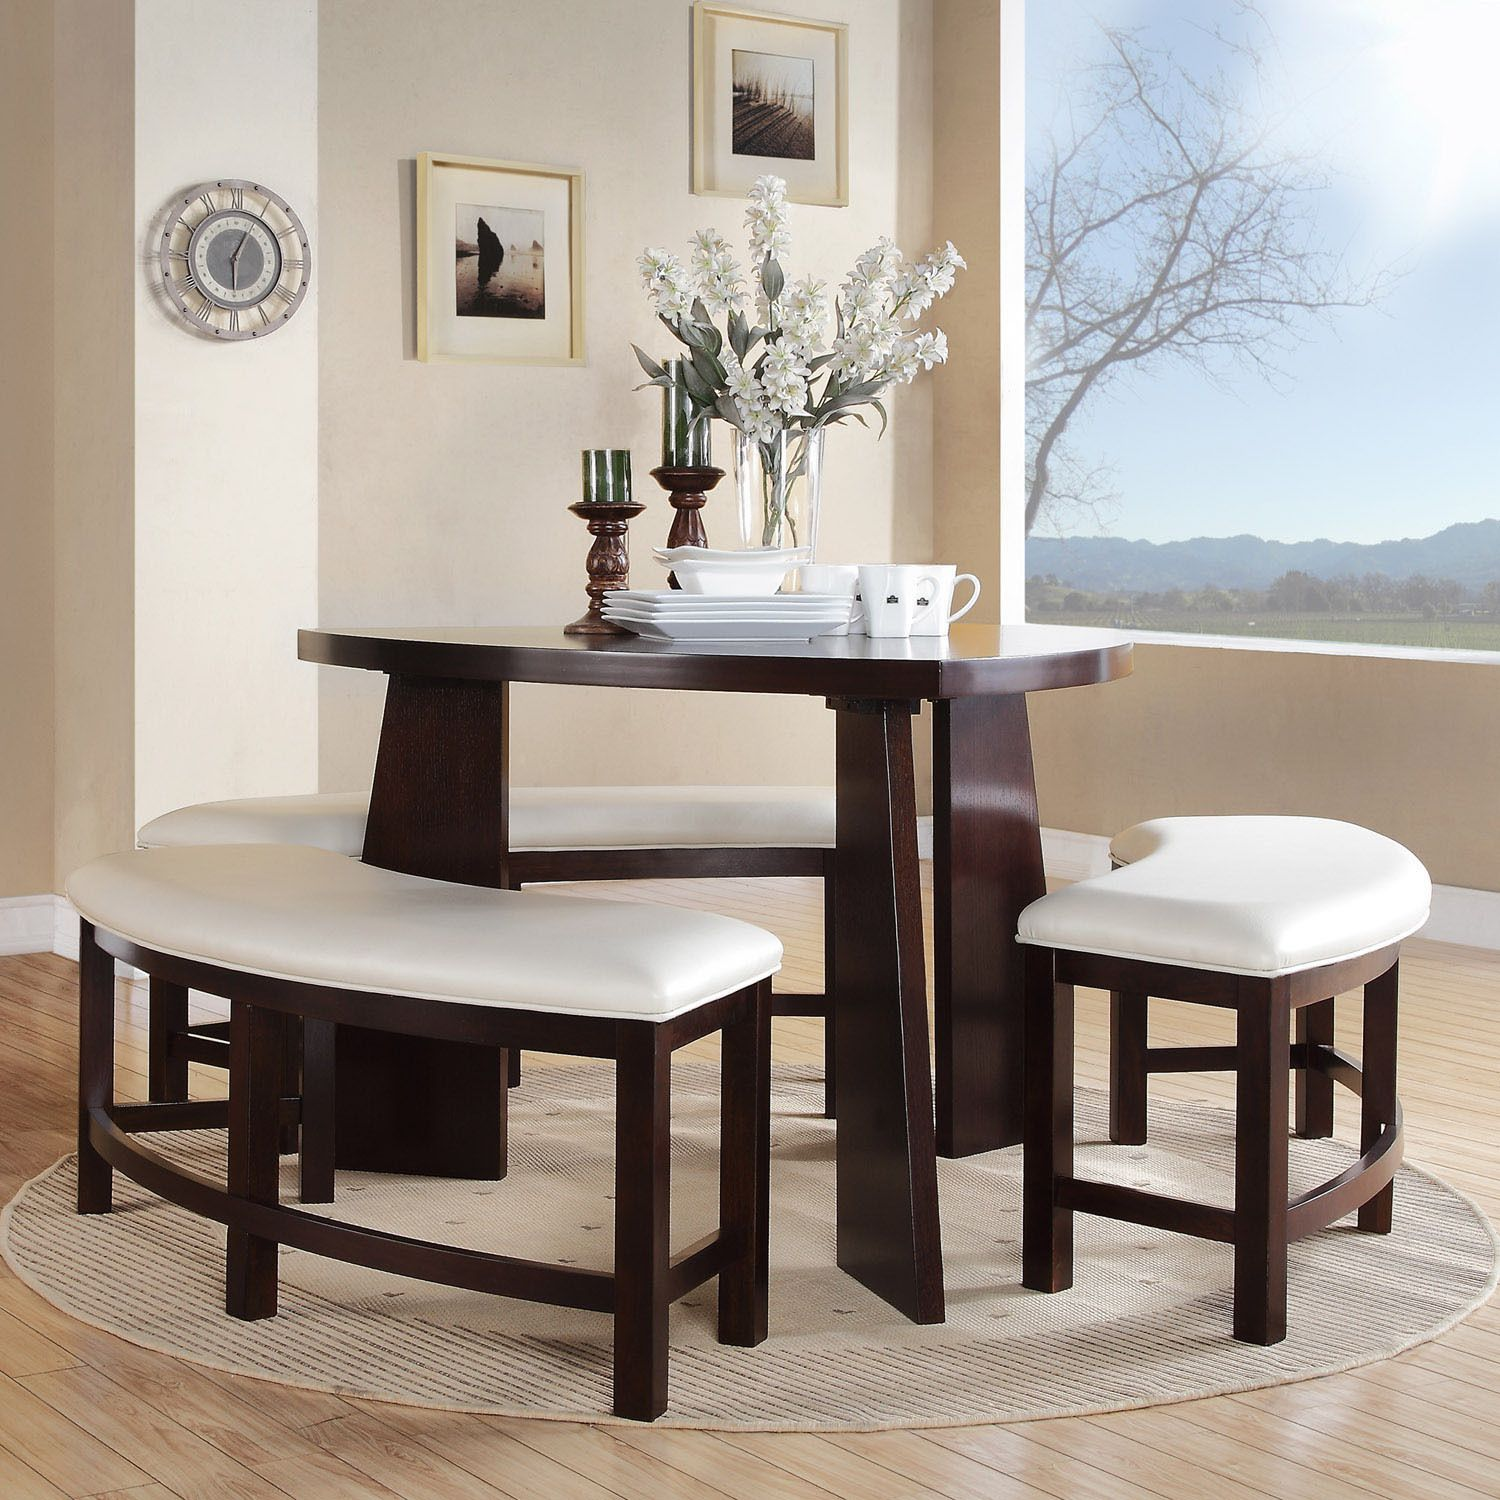 Upgrade your home decor with this triangle-shaped Paradise dining table.  This dining set